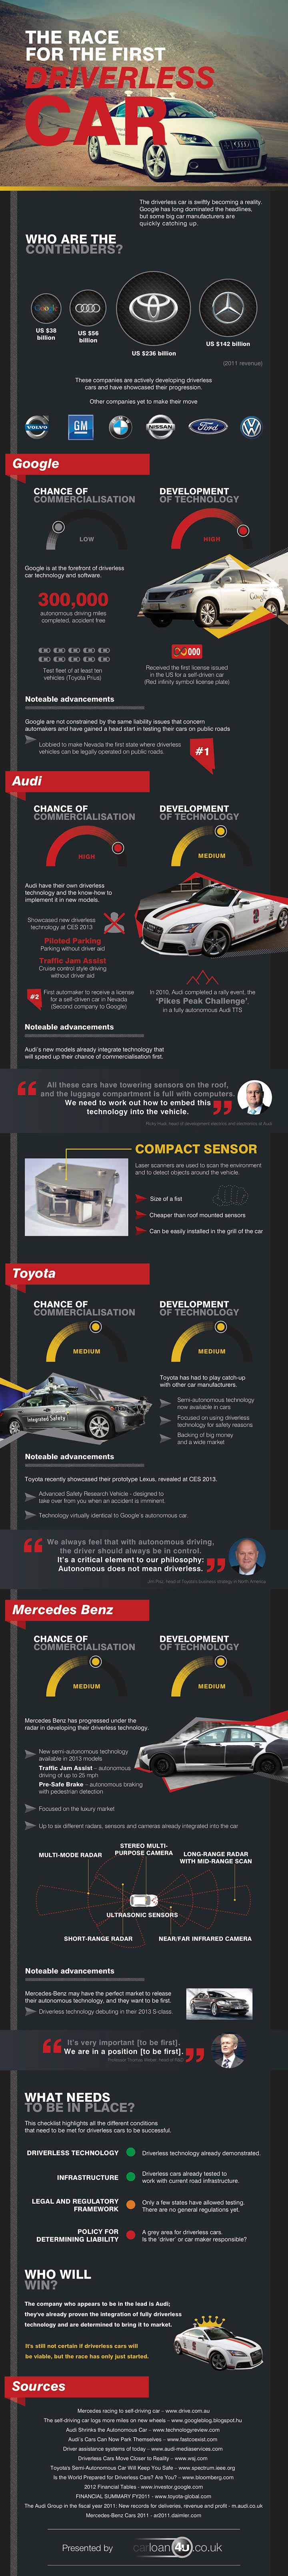 The race is on - for the first driverless car!  http://www.carloan4u.co.uk/infographics/the-race-for-the-first-driverless-car.html